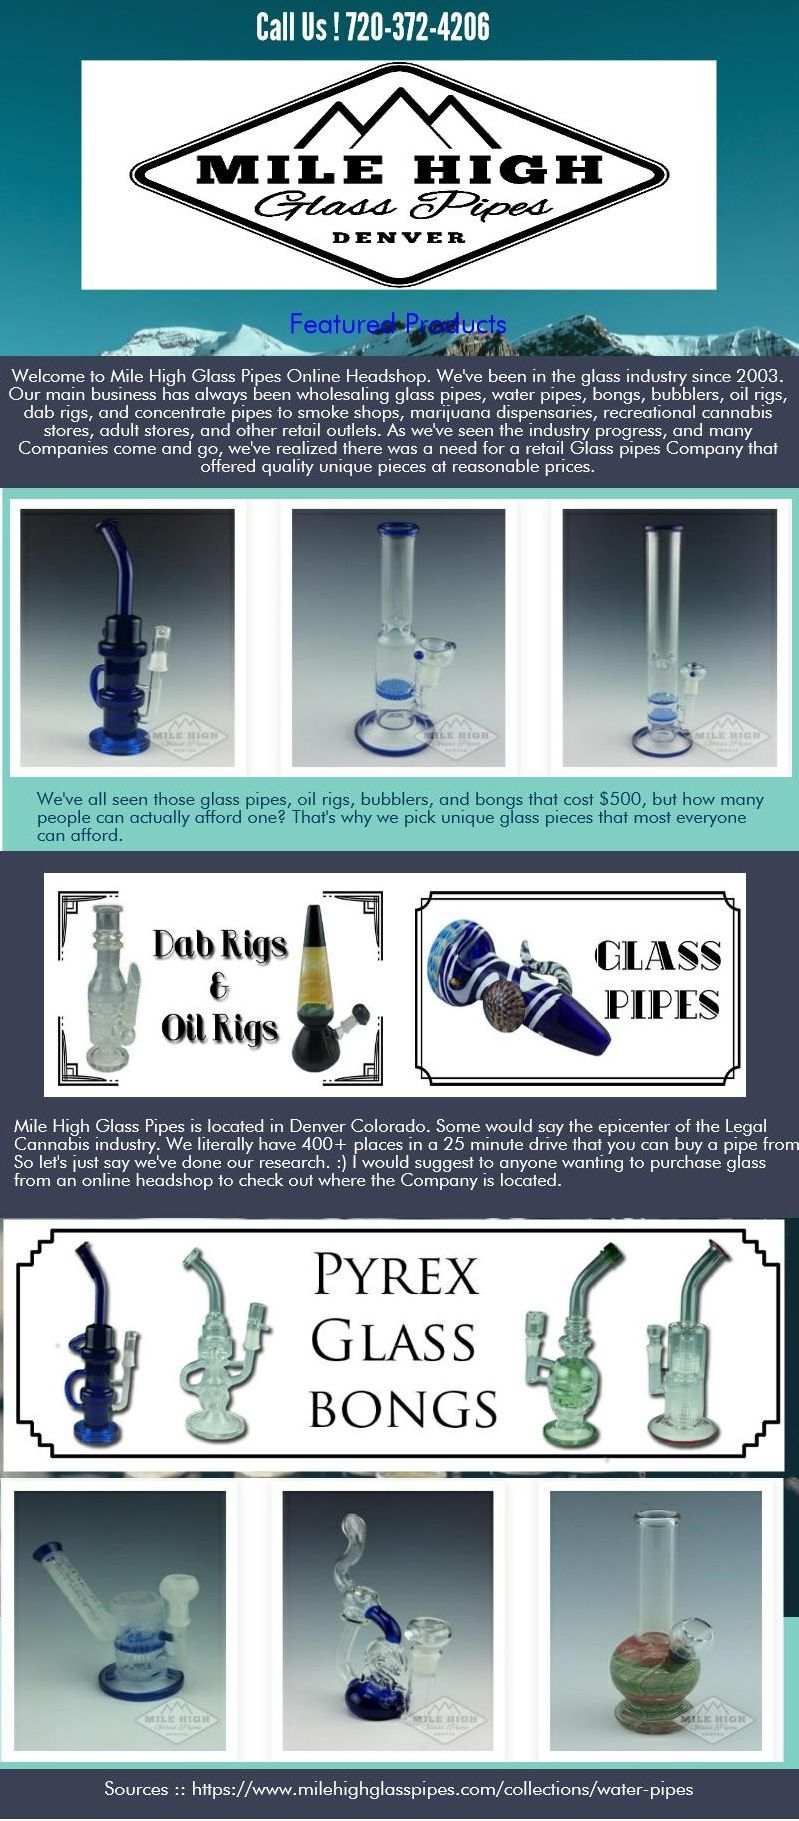 Acrylic bongs and metal bowls that were popular earlier used to give